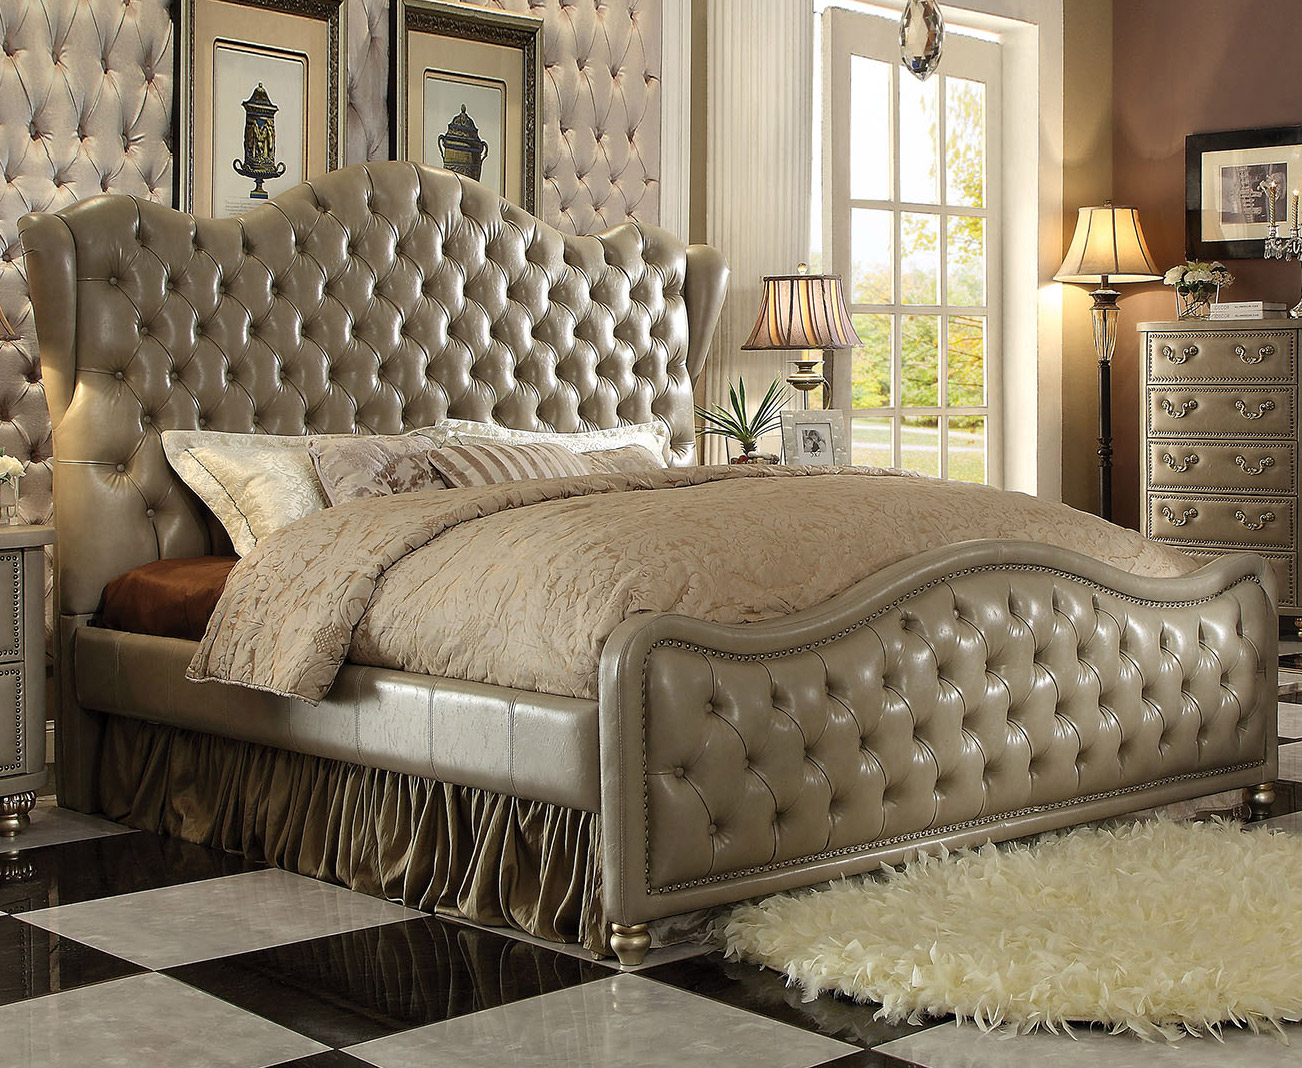 Varada Queen Leather Bed Acme Furniture Home Gallery Stores